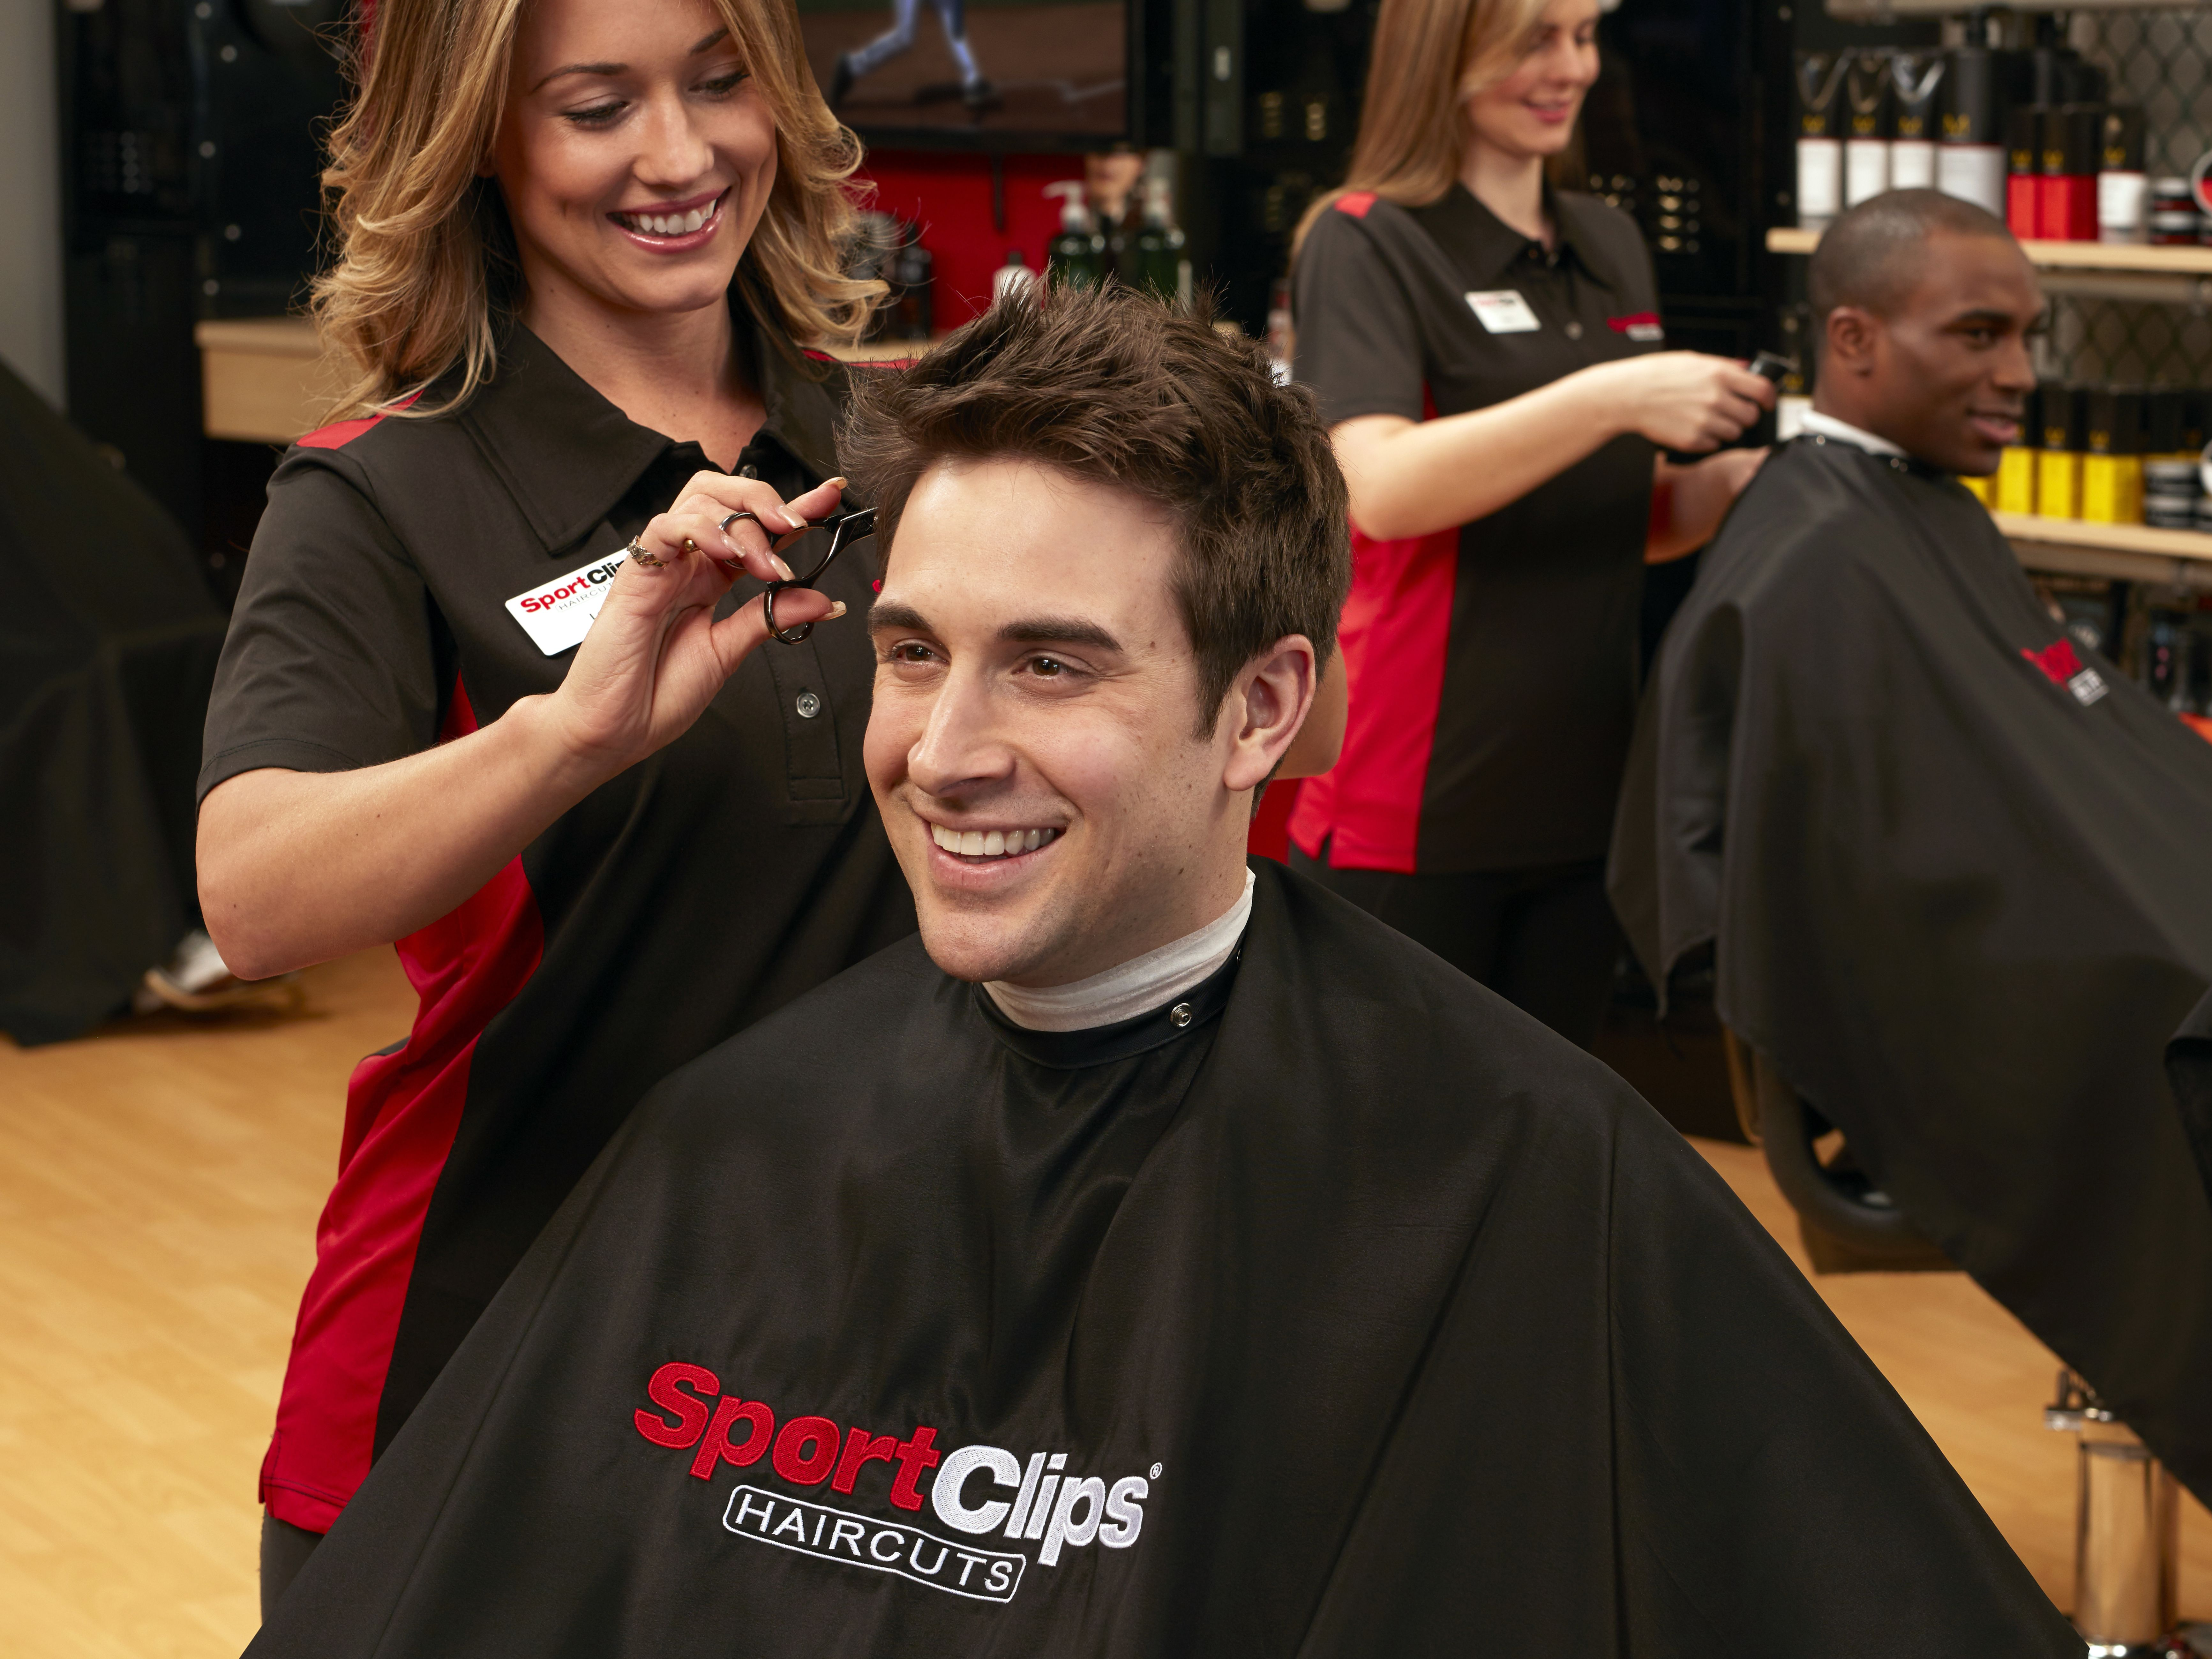 Sport clips haircuts ctgqyp